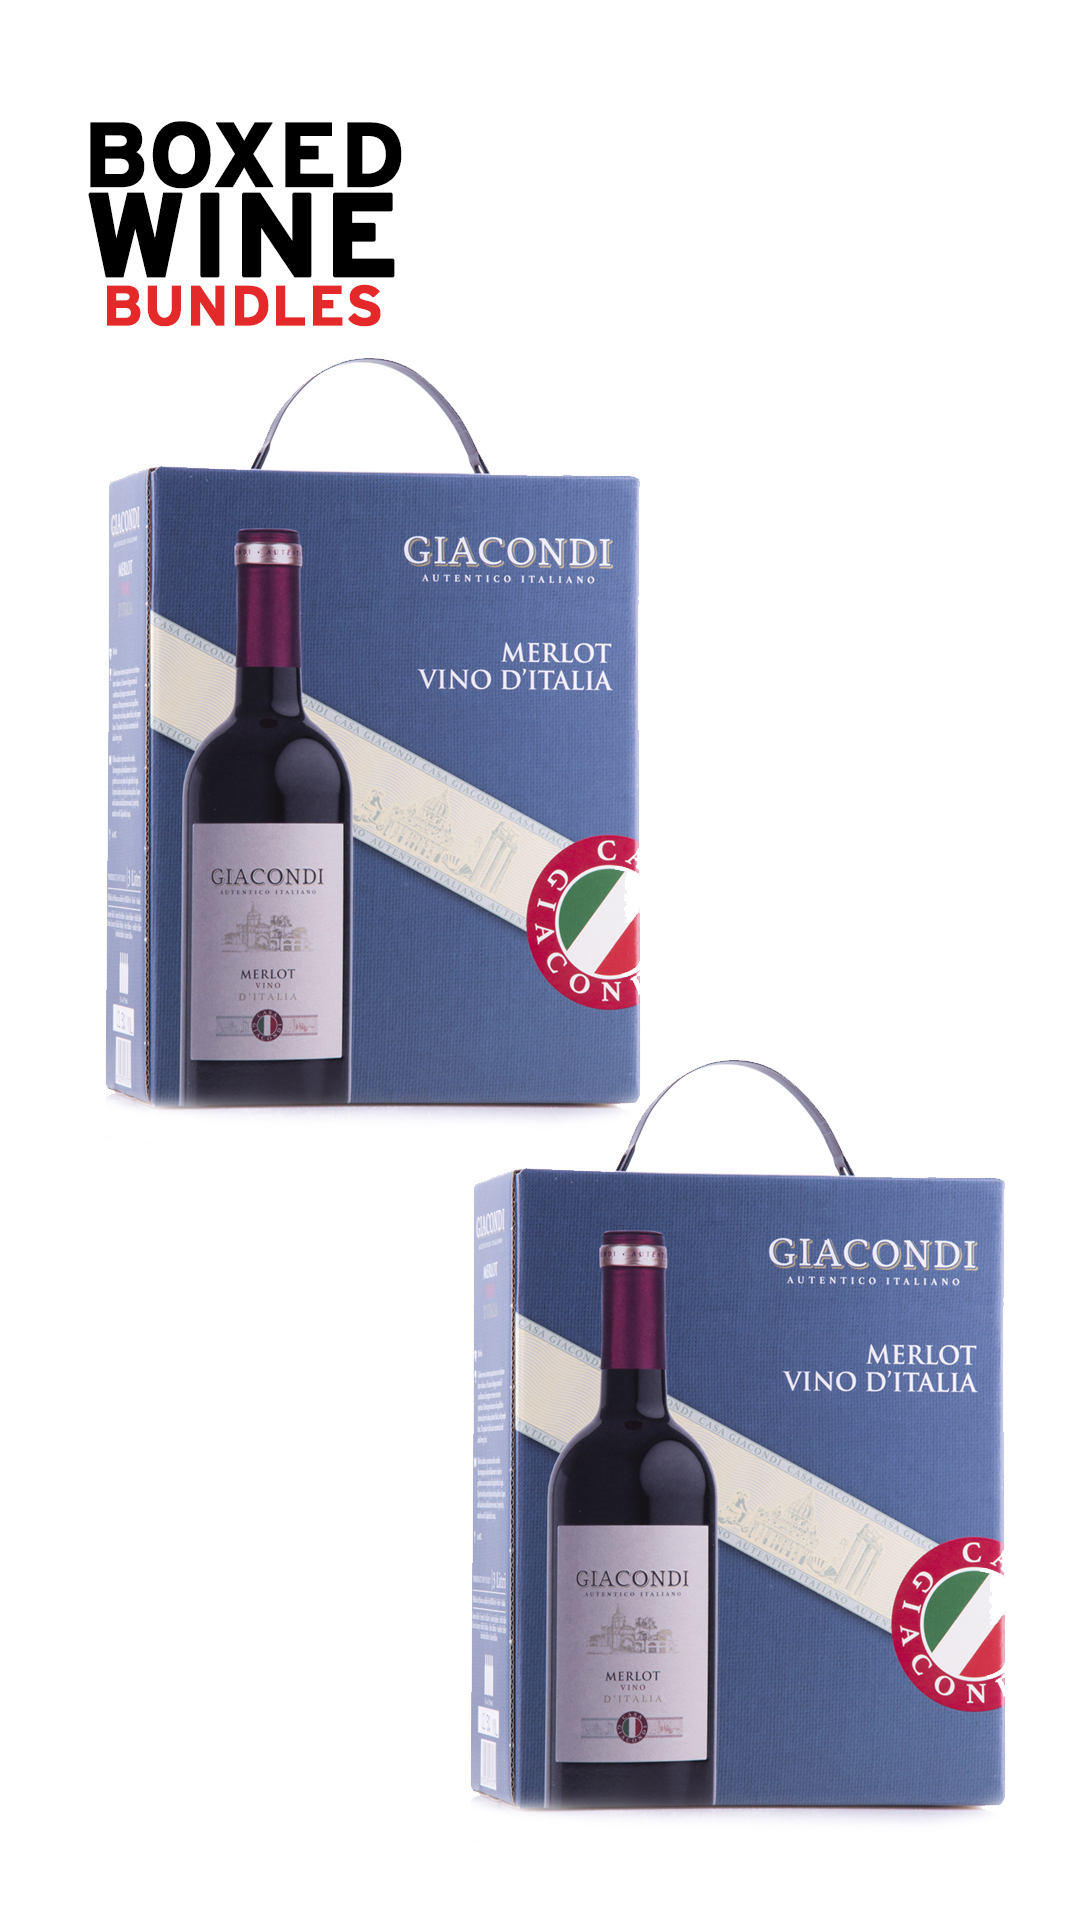 A product image for Giacondi Merlot Bundle- Includes two 3L boxes